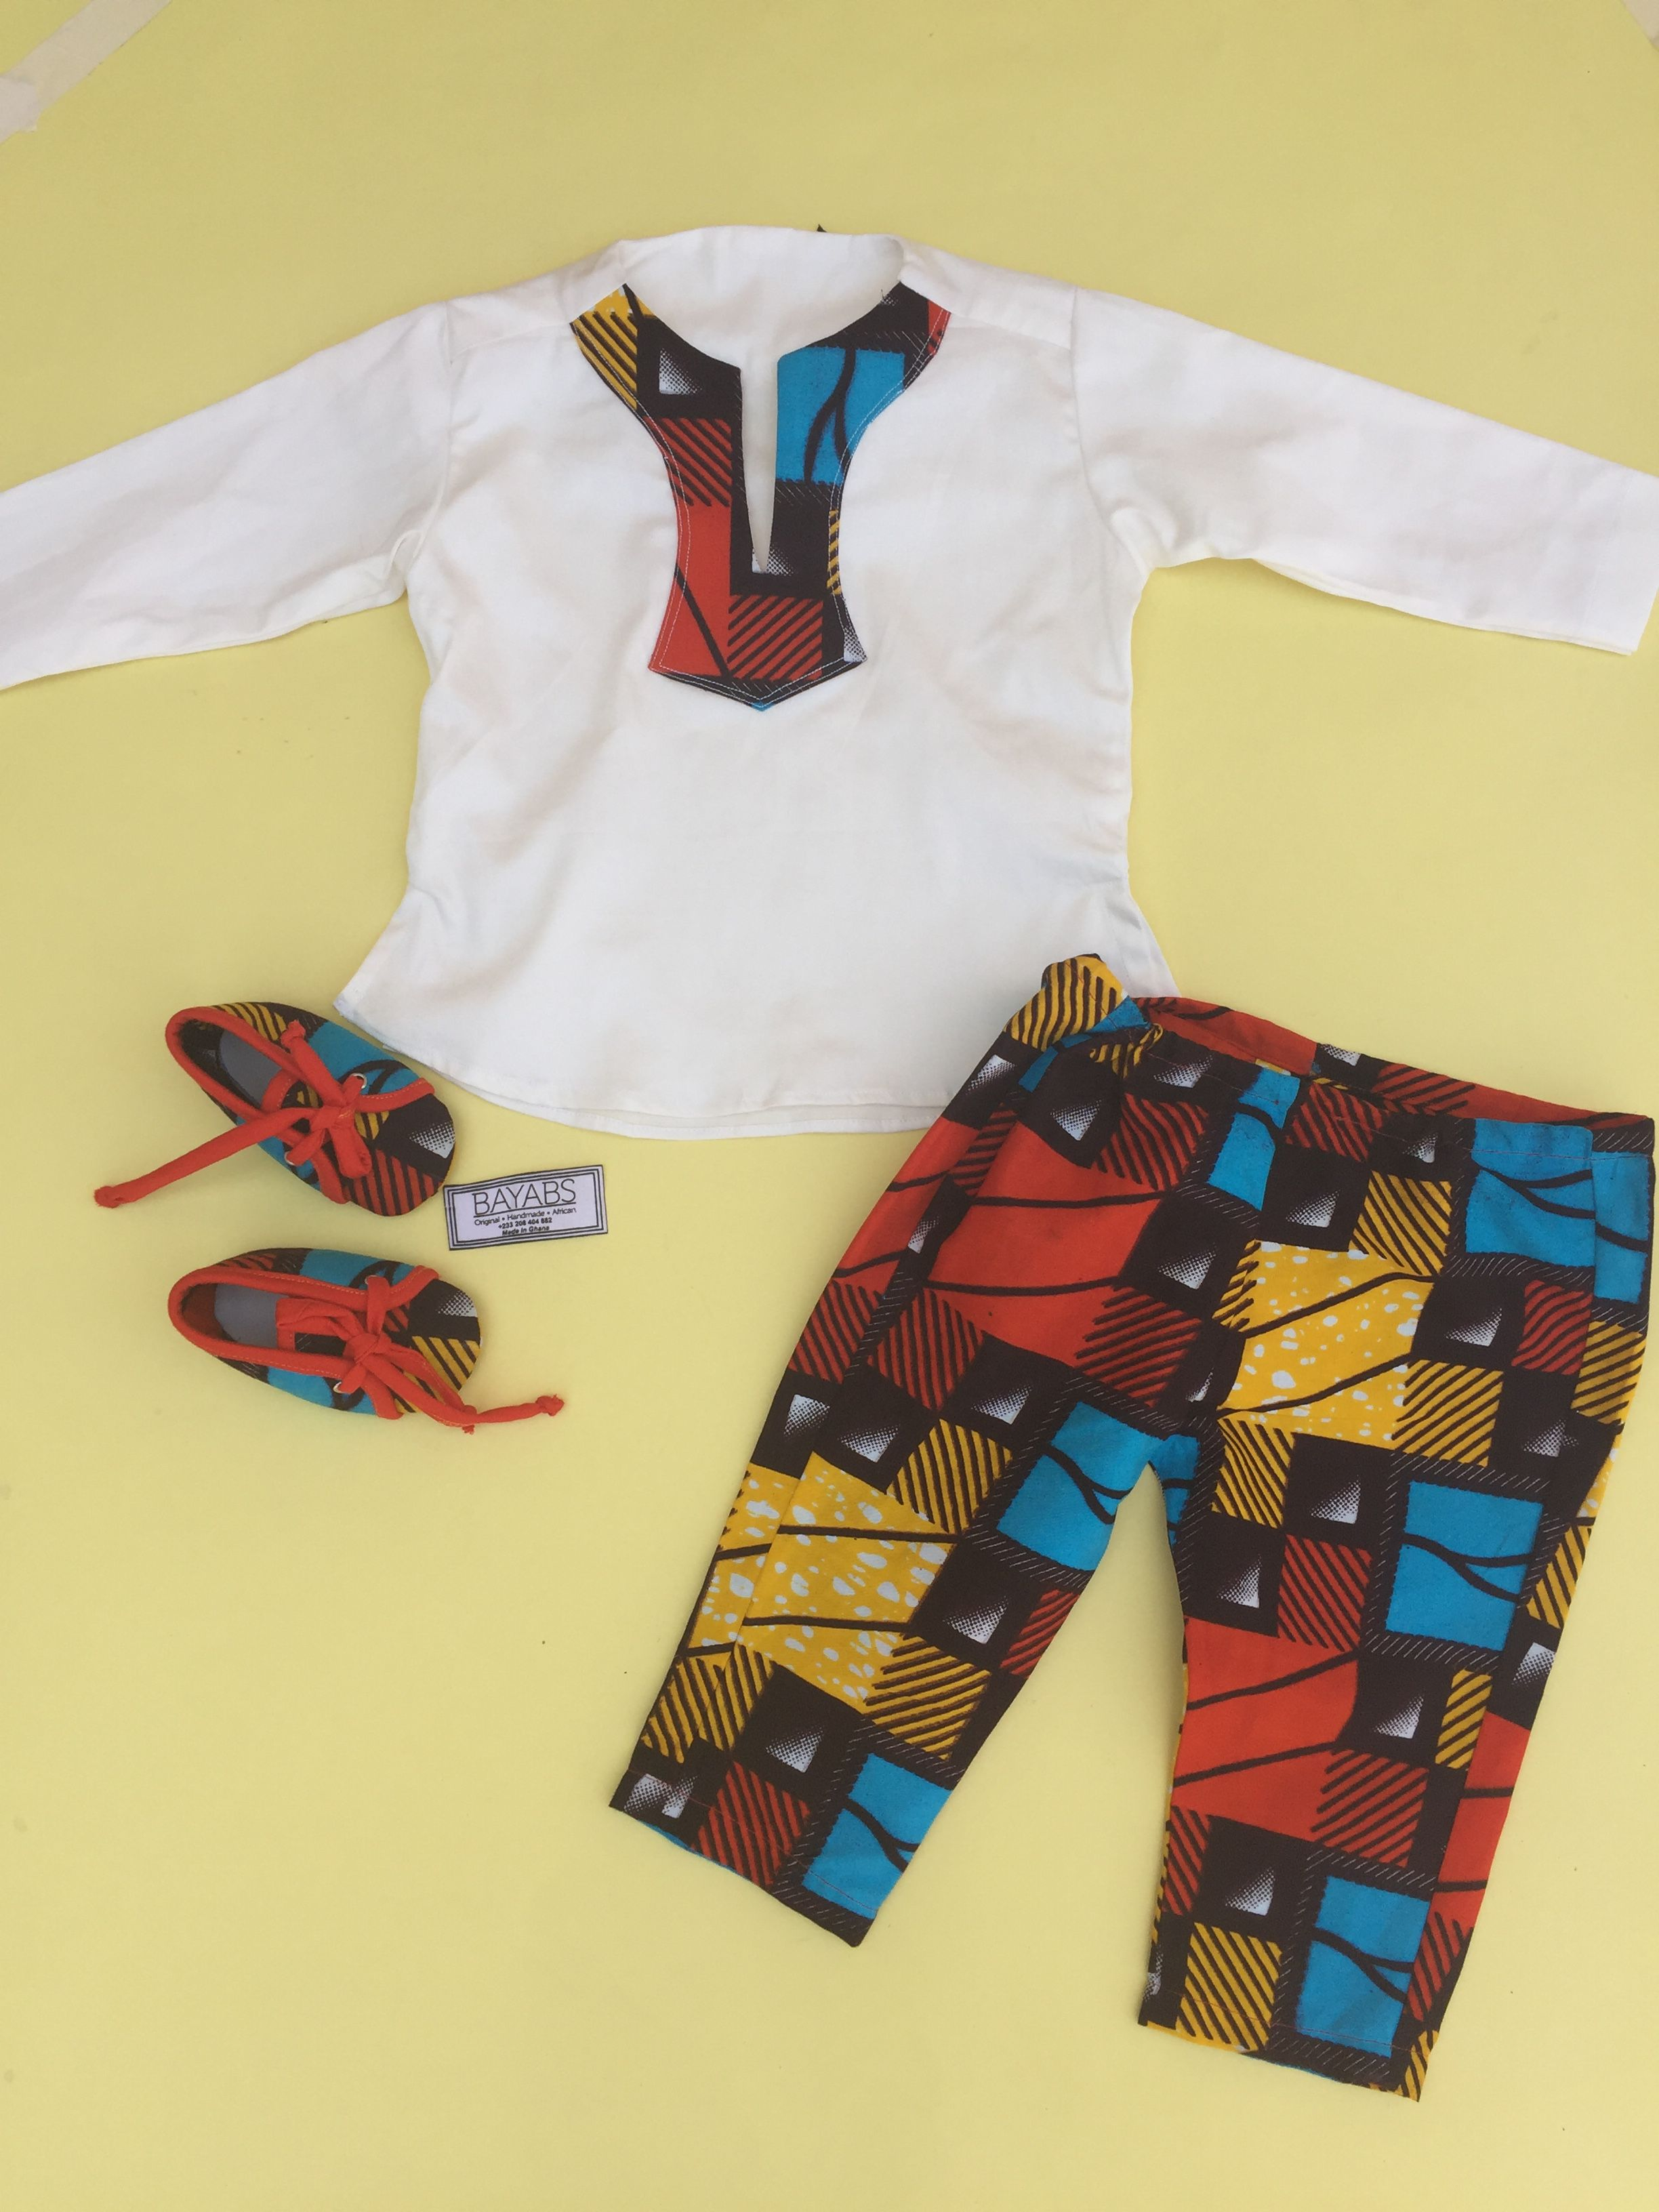 4ee2eda9b576 Boys set: Trouser, Shirt, Bib, Shoes made with African Print ...